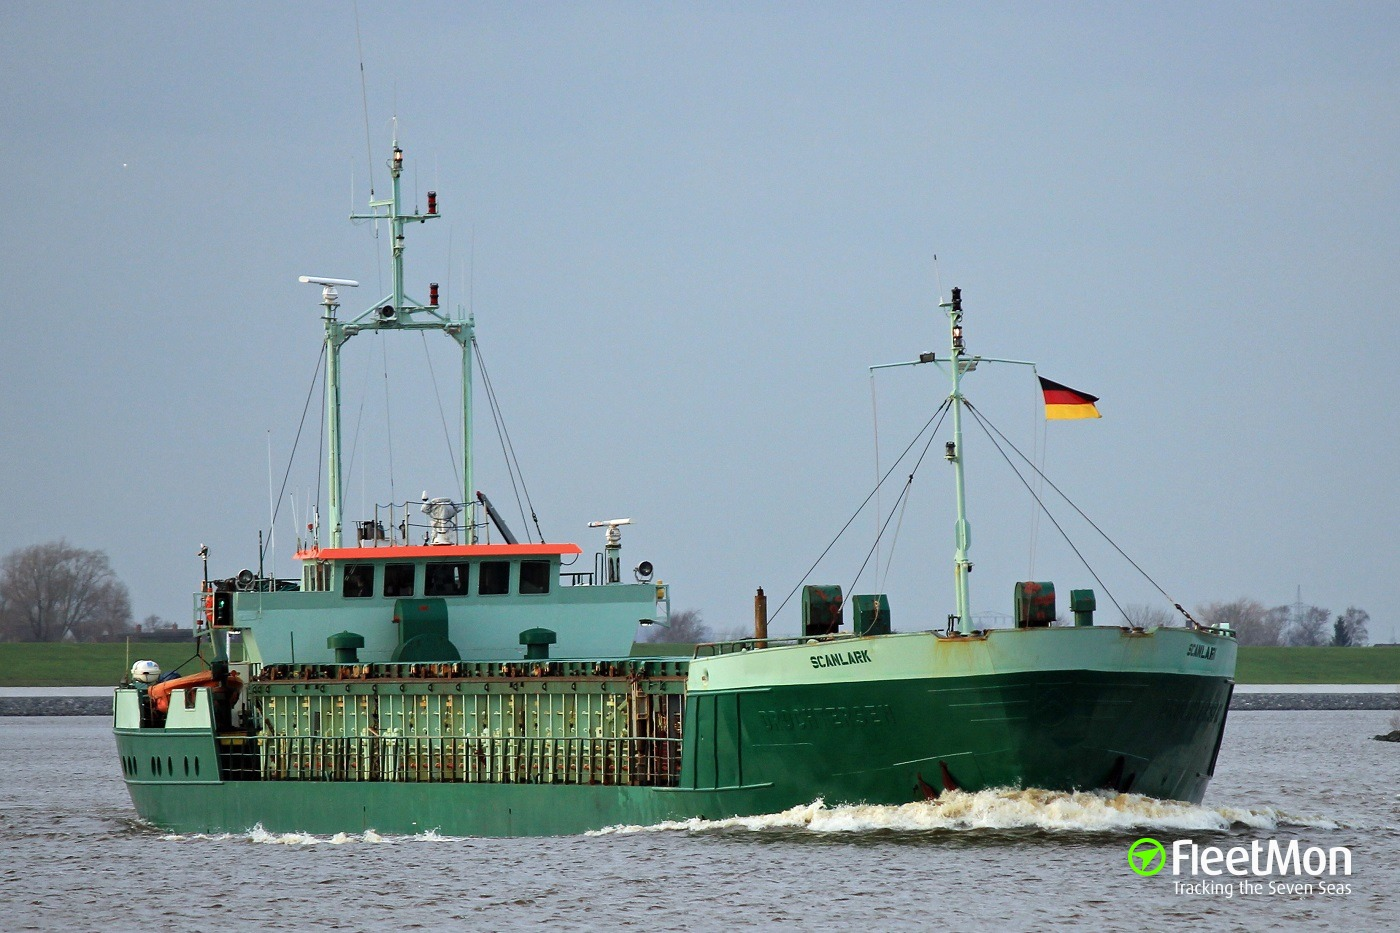 General cargo vessel Scanlark towed back to Kiel